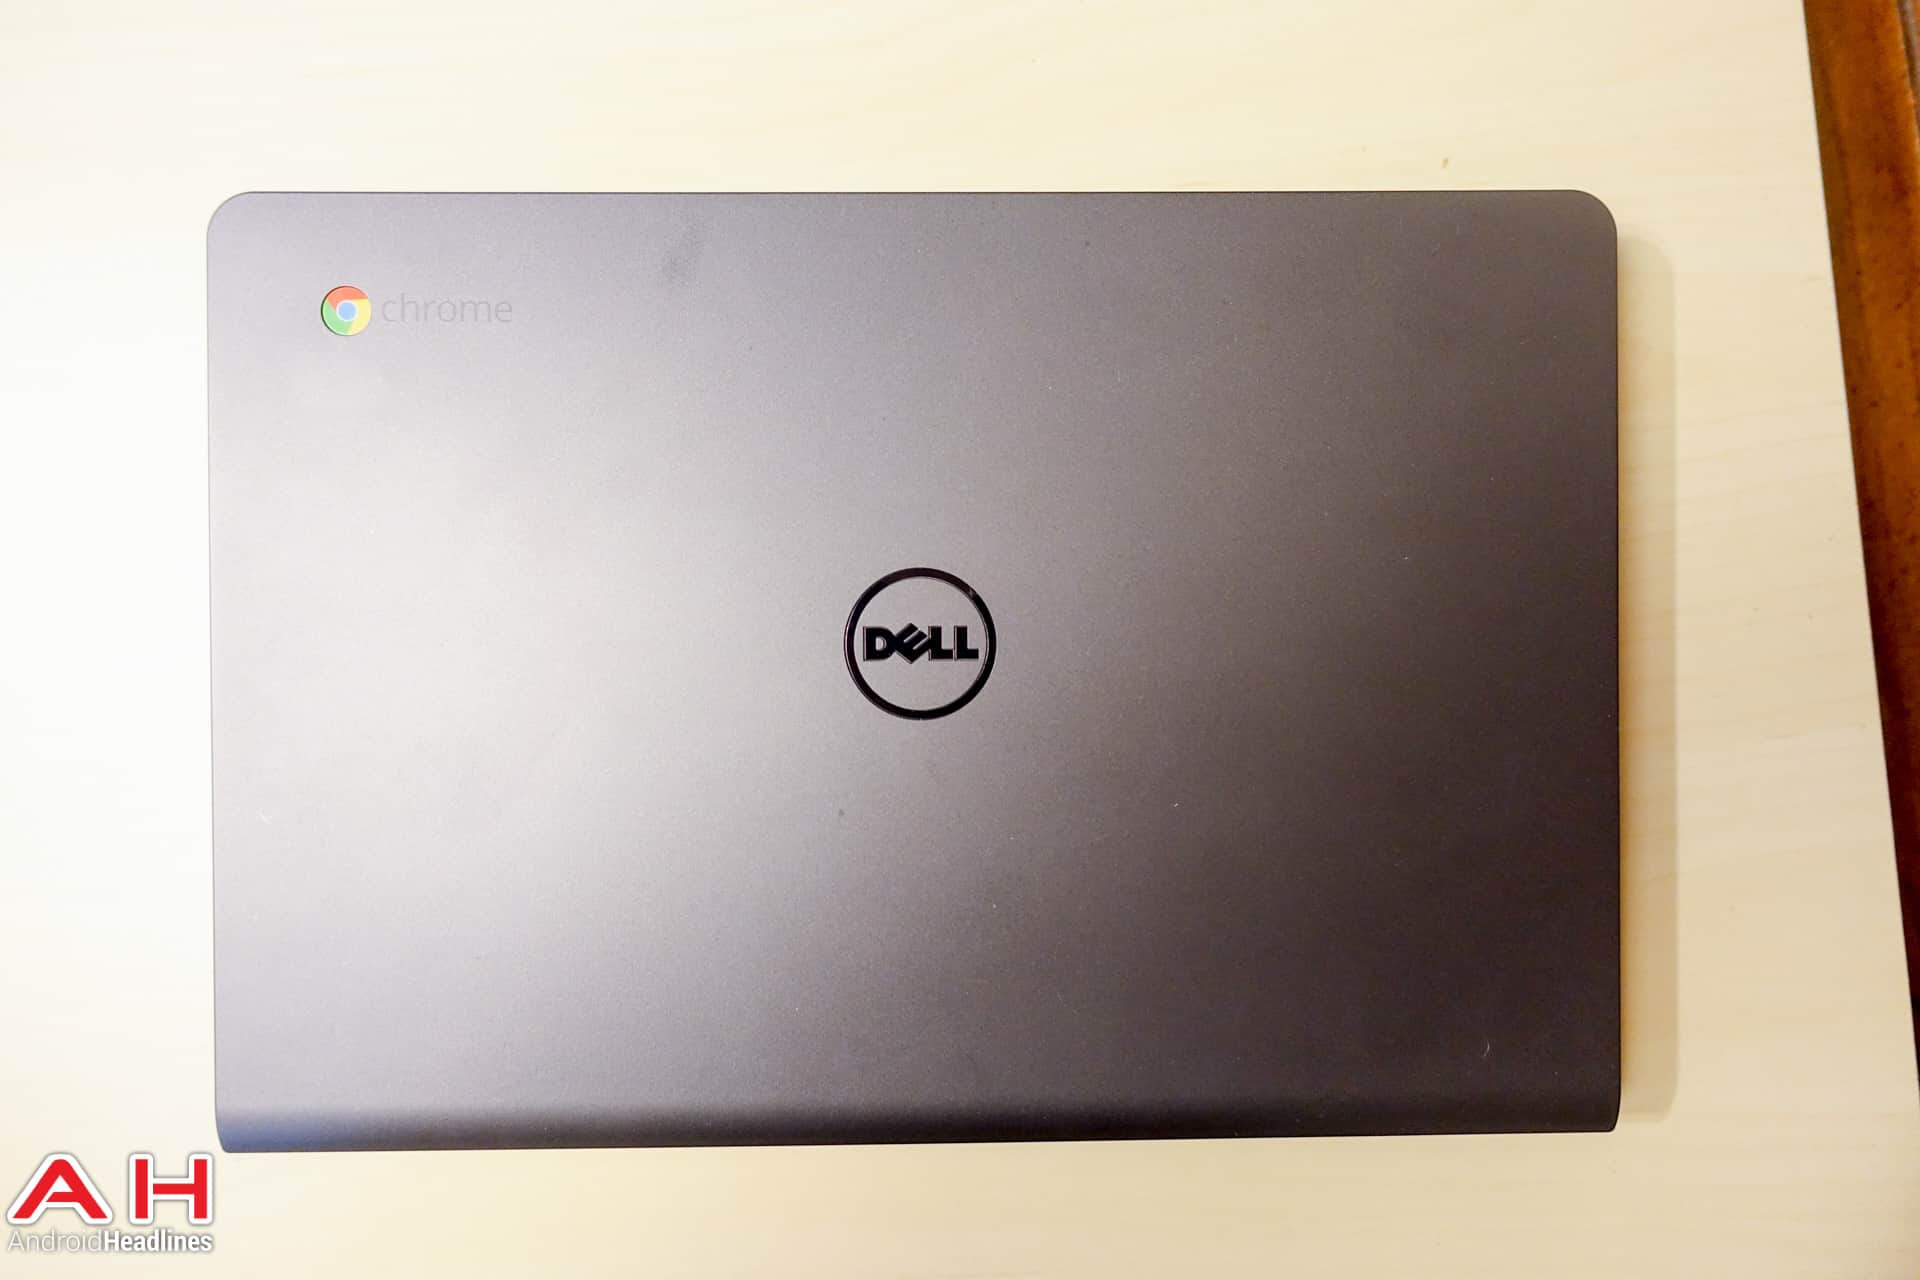 Dell-Chromebook-i3-AH-02920